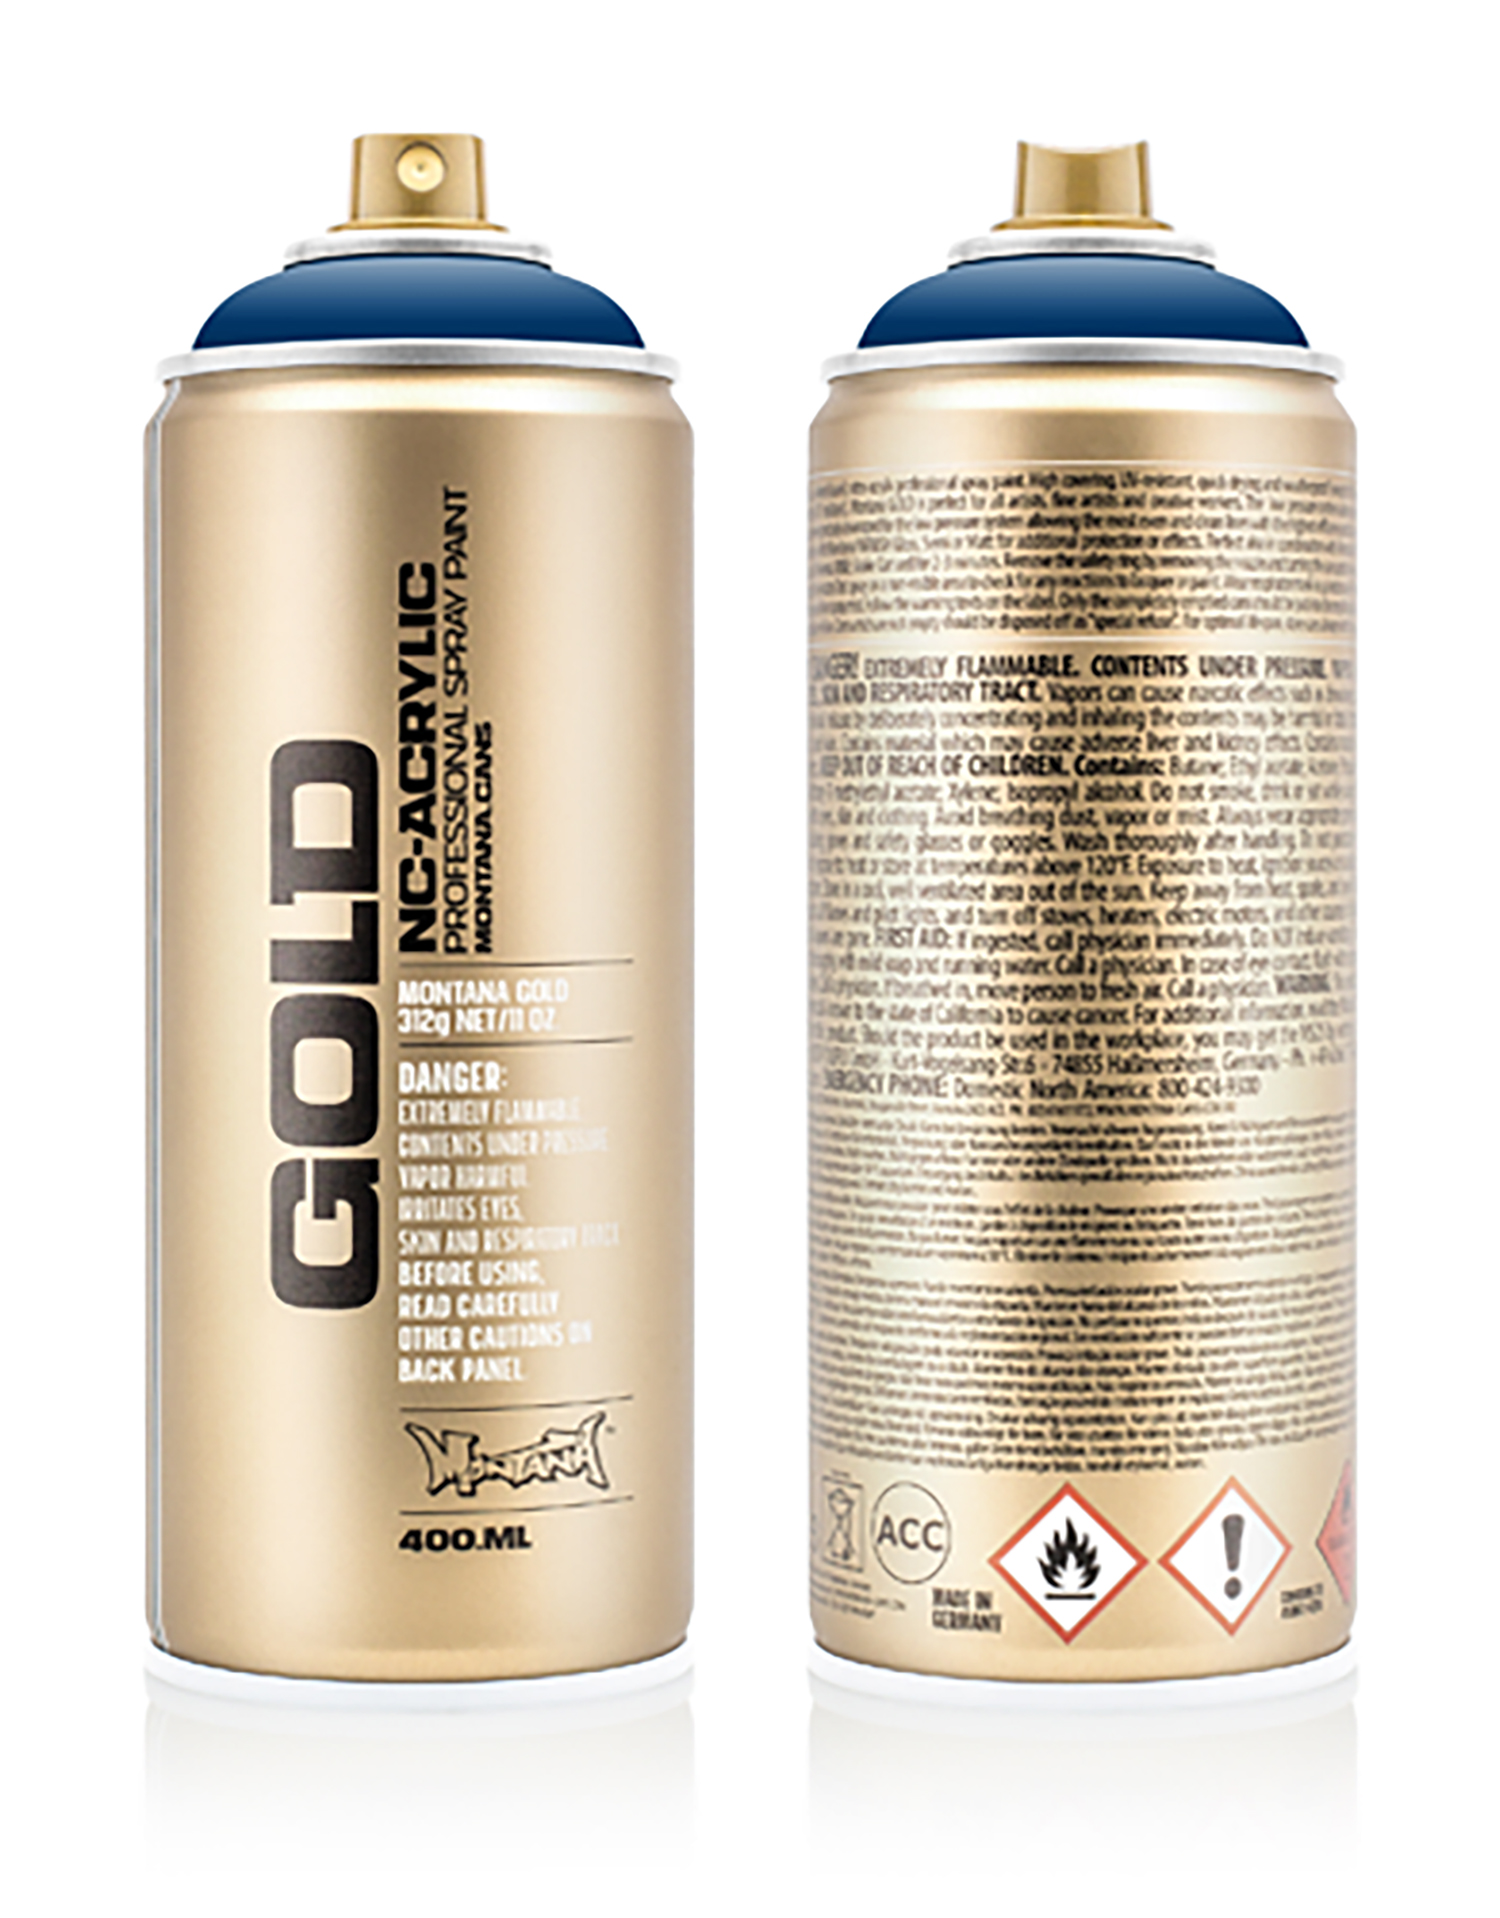 MONTANA-GOLD-SPRAY-400ML-G-5080